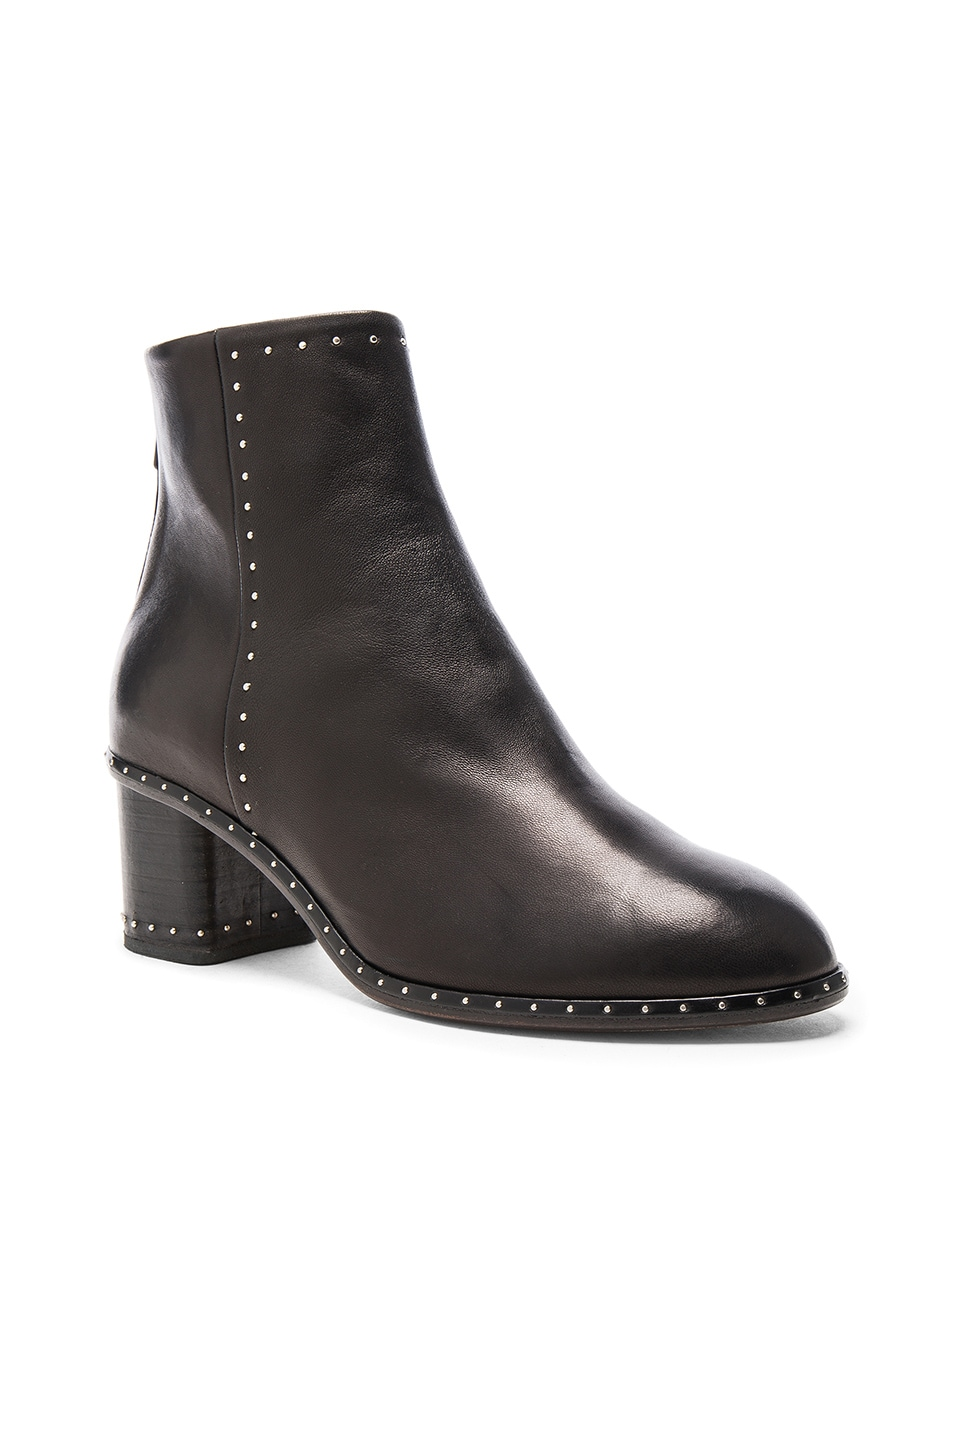 Image 2 of Rag & Bone Leather Willow Stud Boots in Black